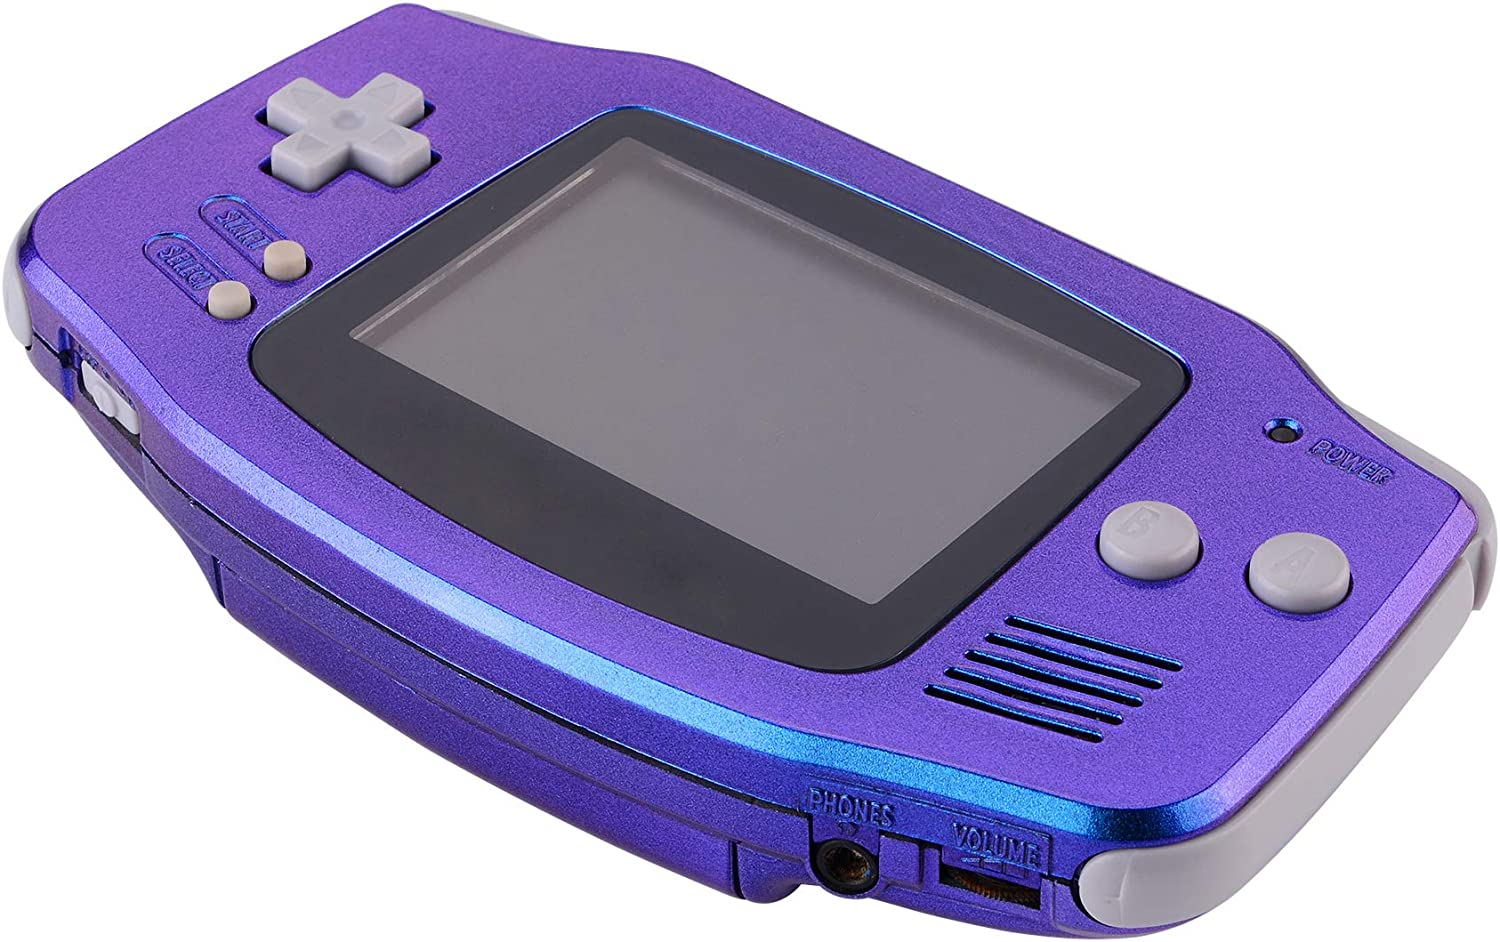 eXtremeRate Chameleon Purple Blue GBA Replacement Full Housing Shell Cover w/Buttons Screws Screwdriver Tools Set for Gameboy Advance - Handheld Game Console NOT Included: Computers & Accessories